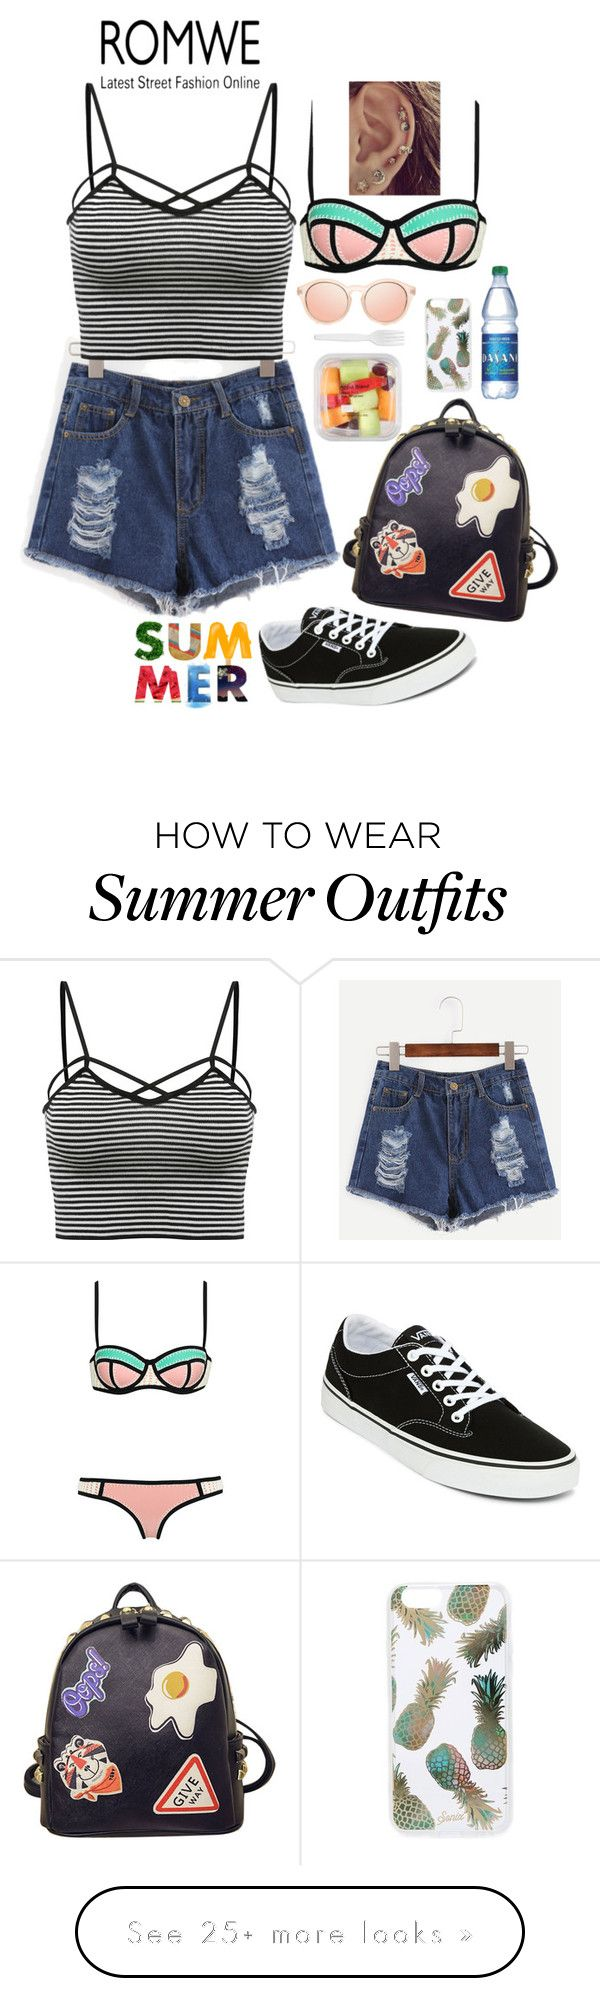 """""""sunset outfit"""" by giulisdasf on Polyvore featuring Cotton Candy, Vans..."""